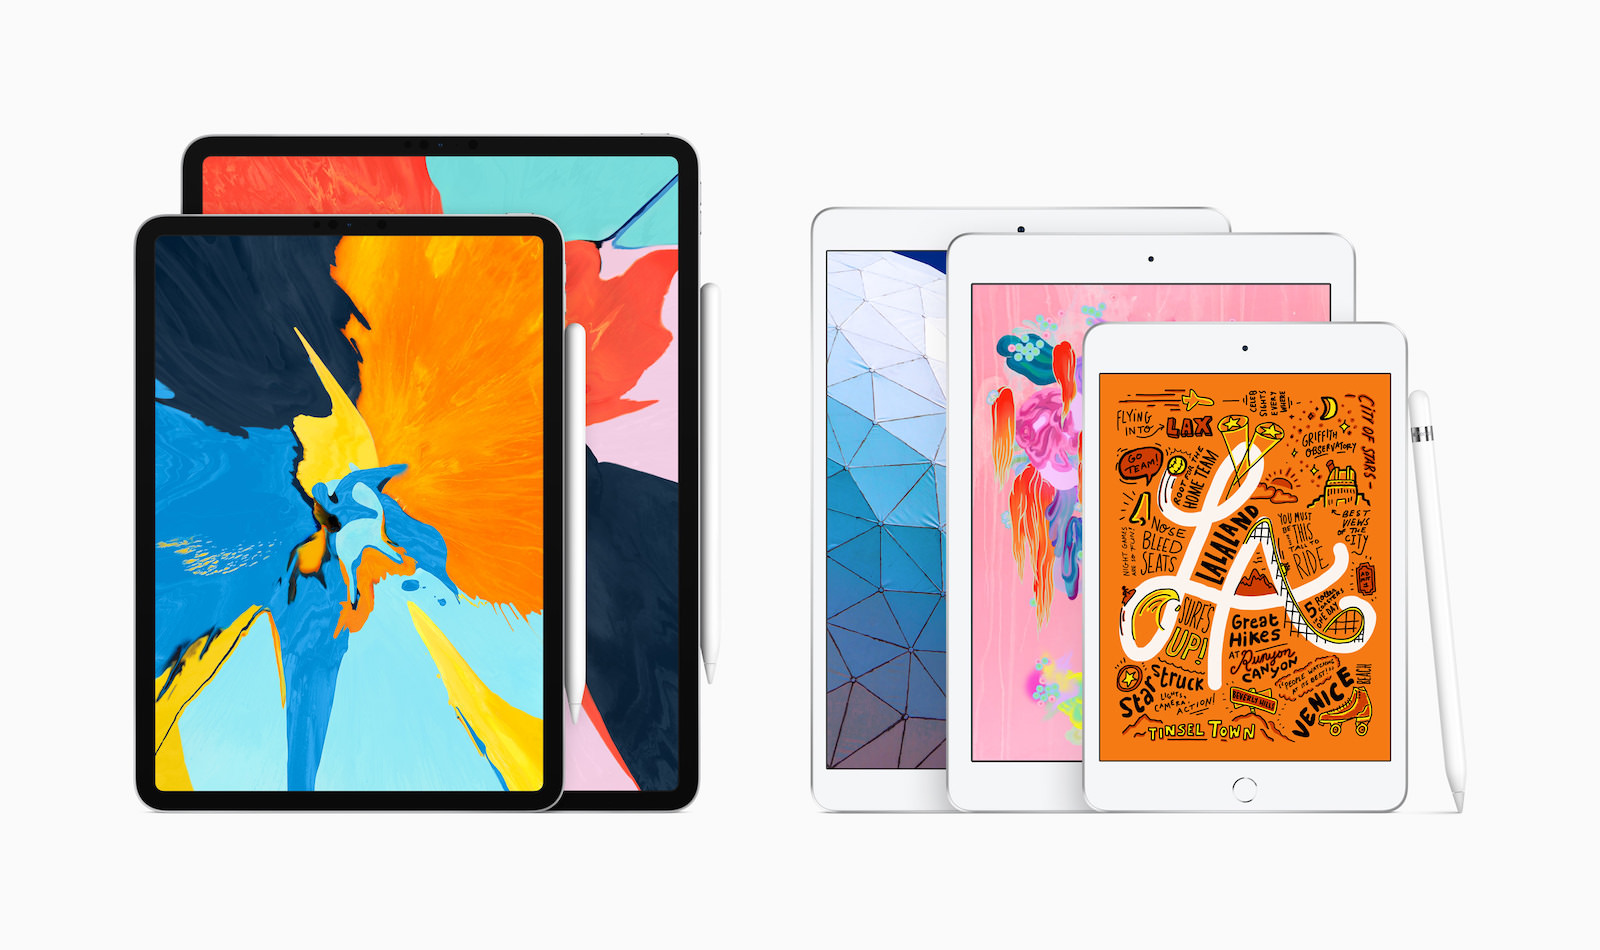 New iPad air and iPad mini with Apple Pencil 03182019